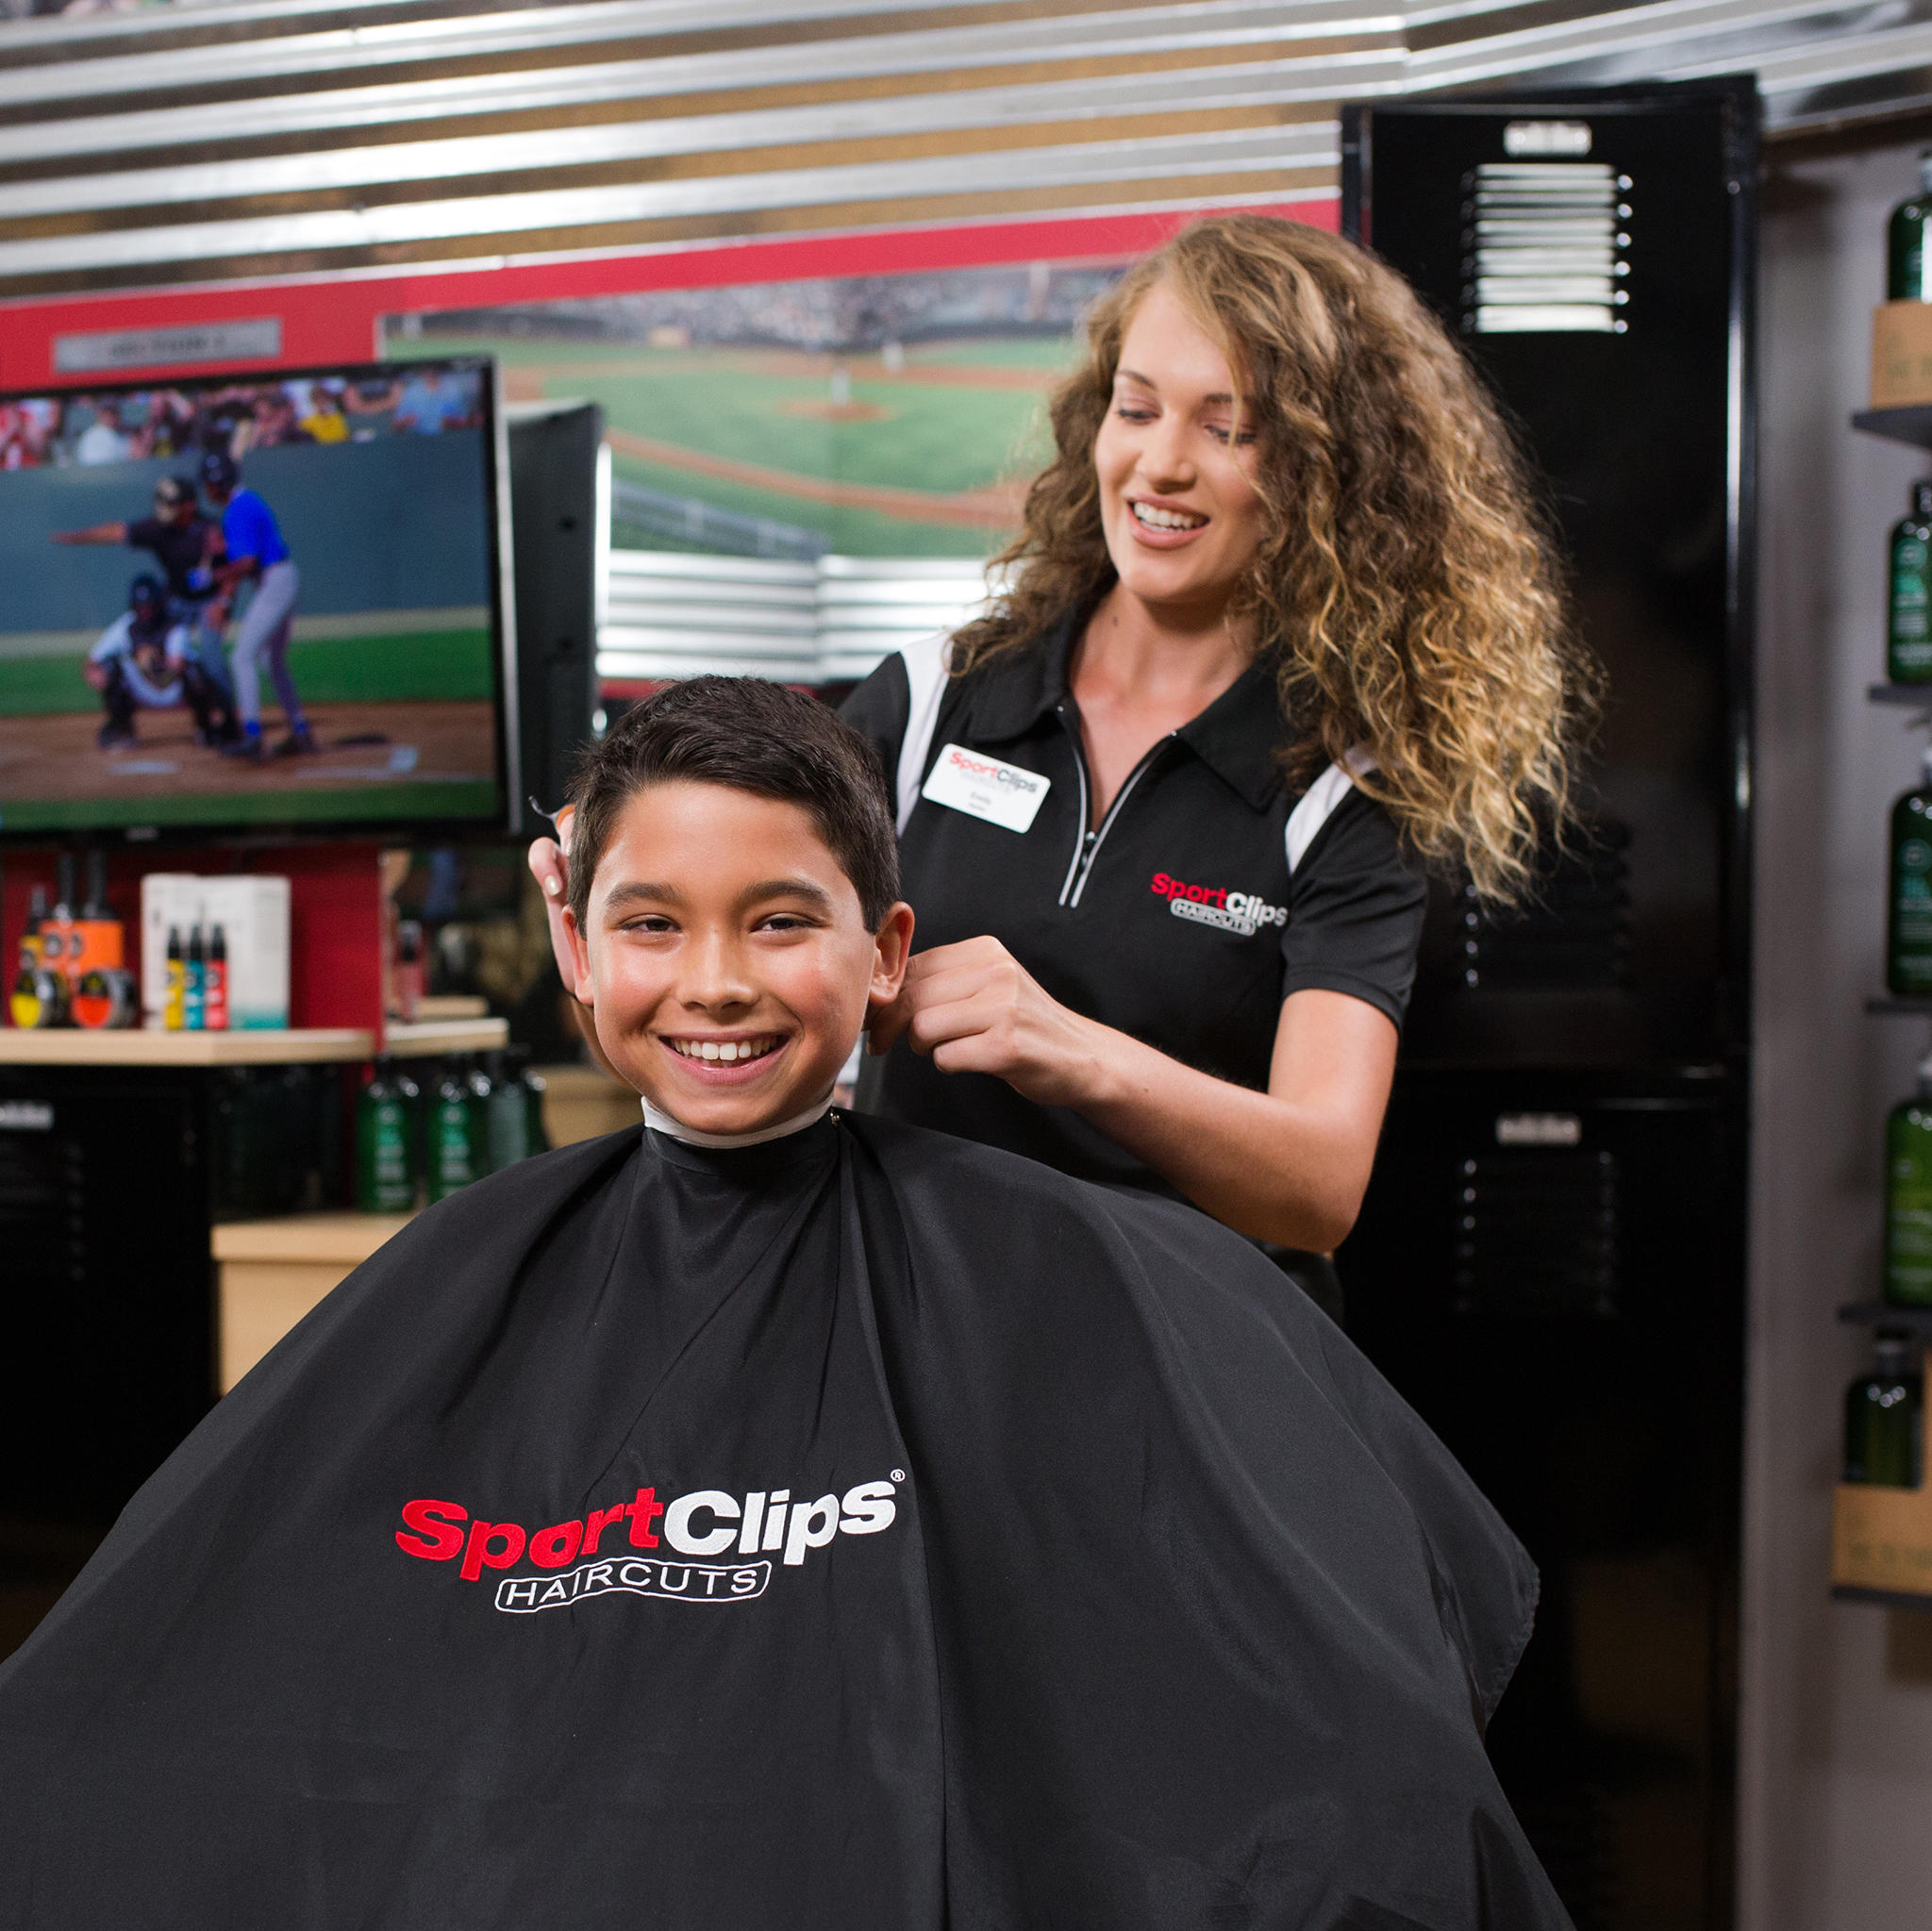 Sport Clips Haircuts of Cincinnati - Northgate Mall image 3